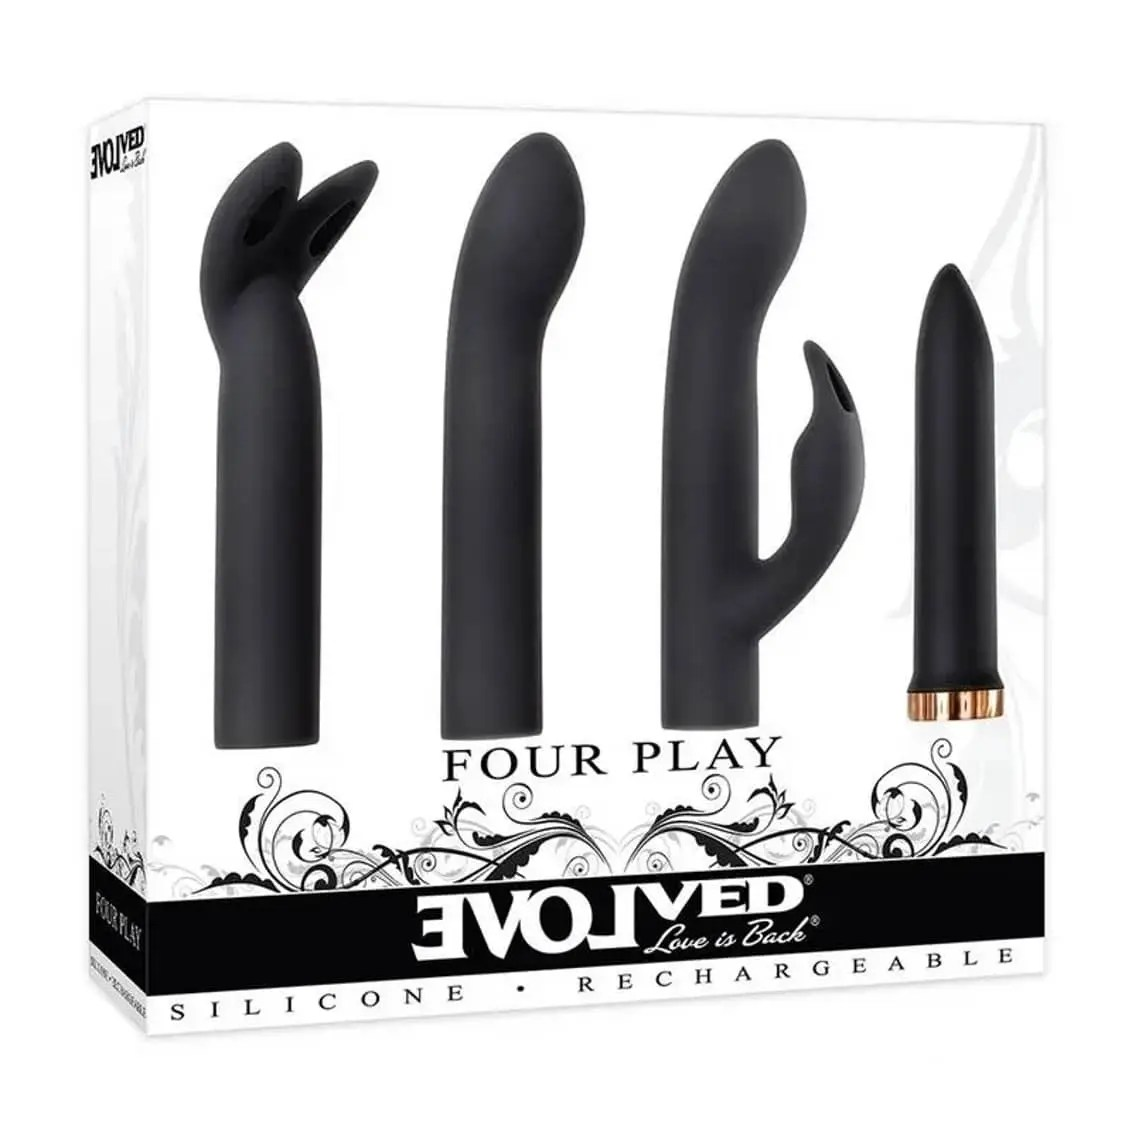 Four Play - Silicone Rechargeable Vibrating Kit - by Evolved